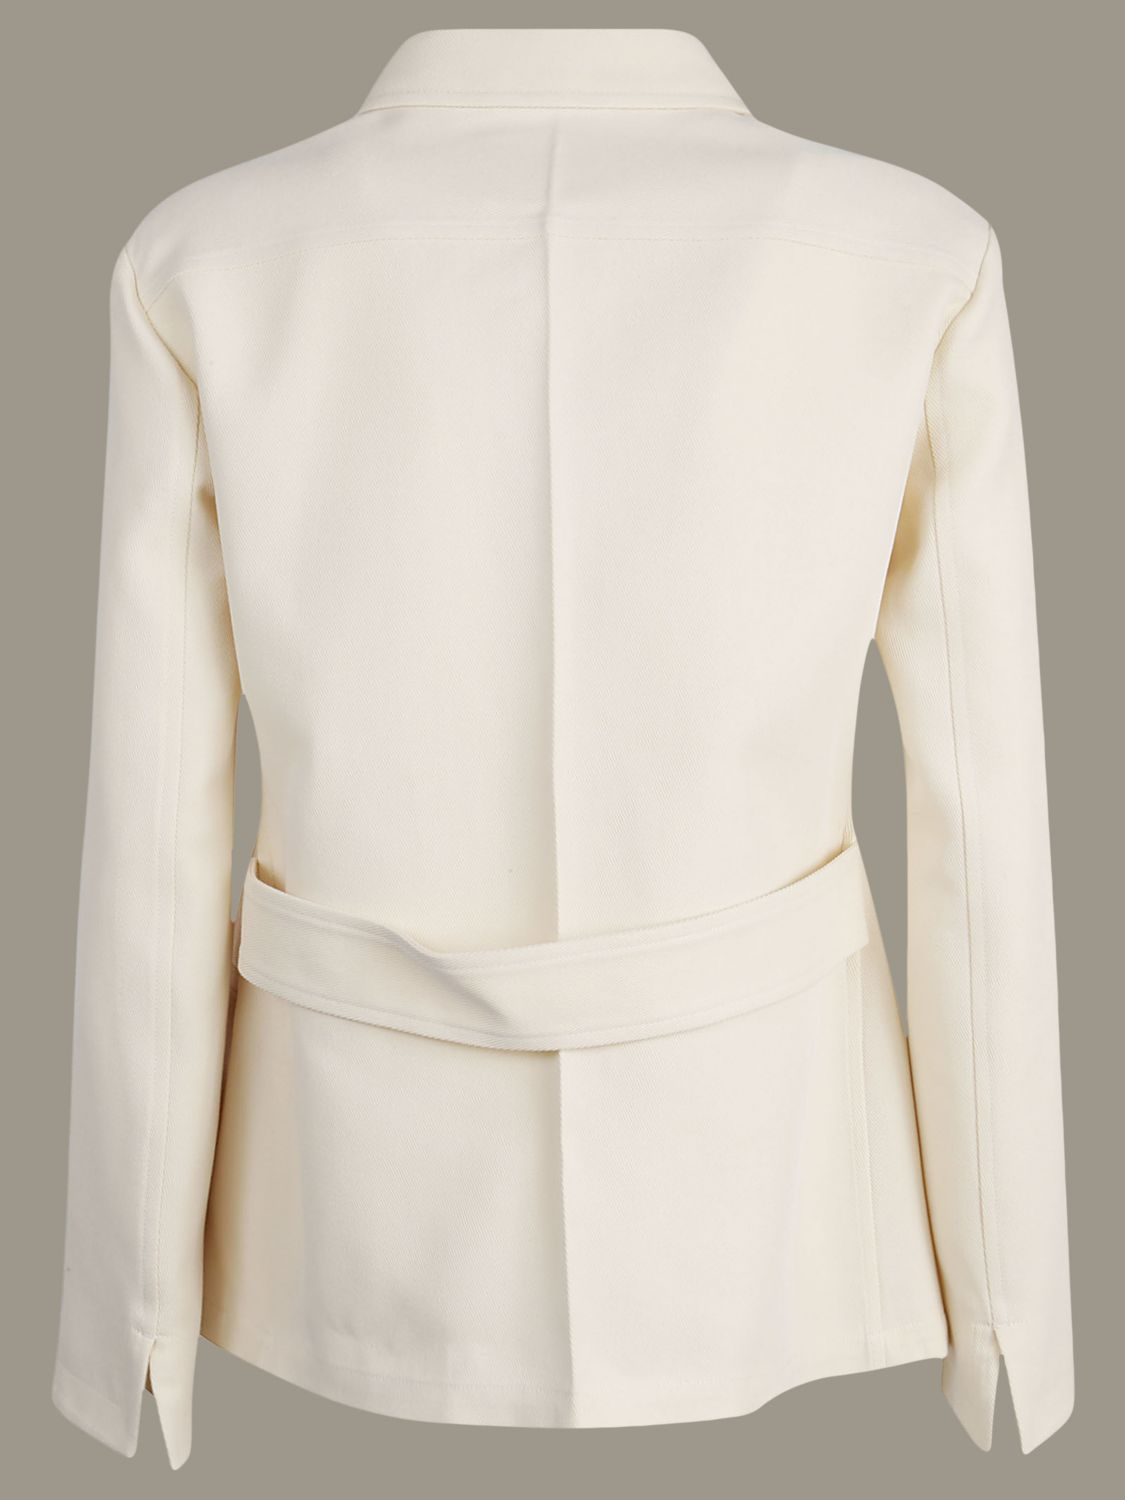 Shirt women Jil Sander white 2